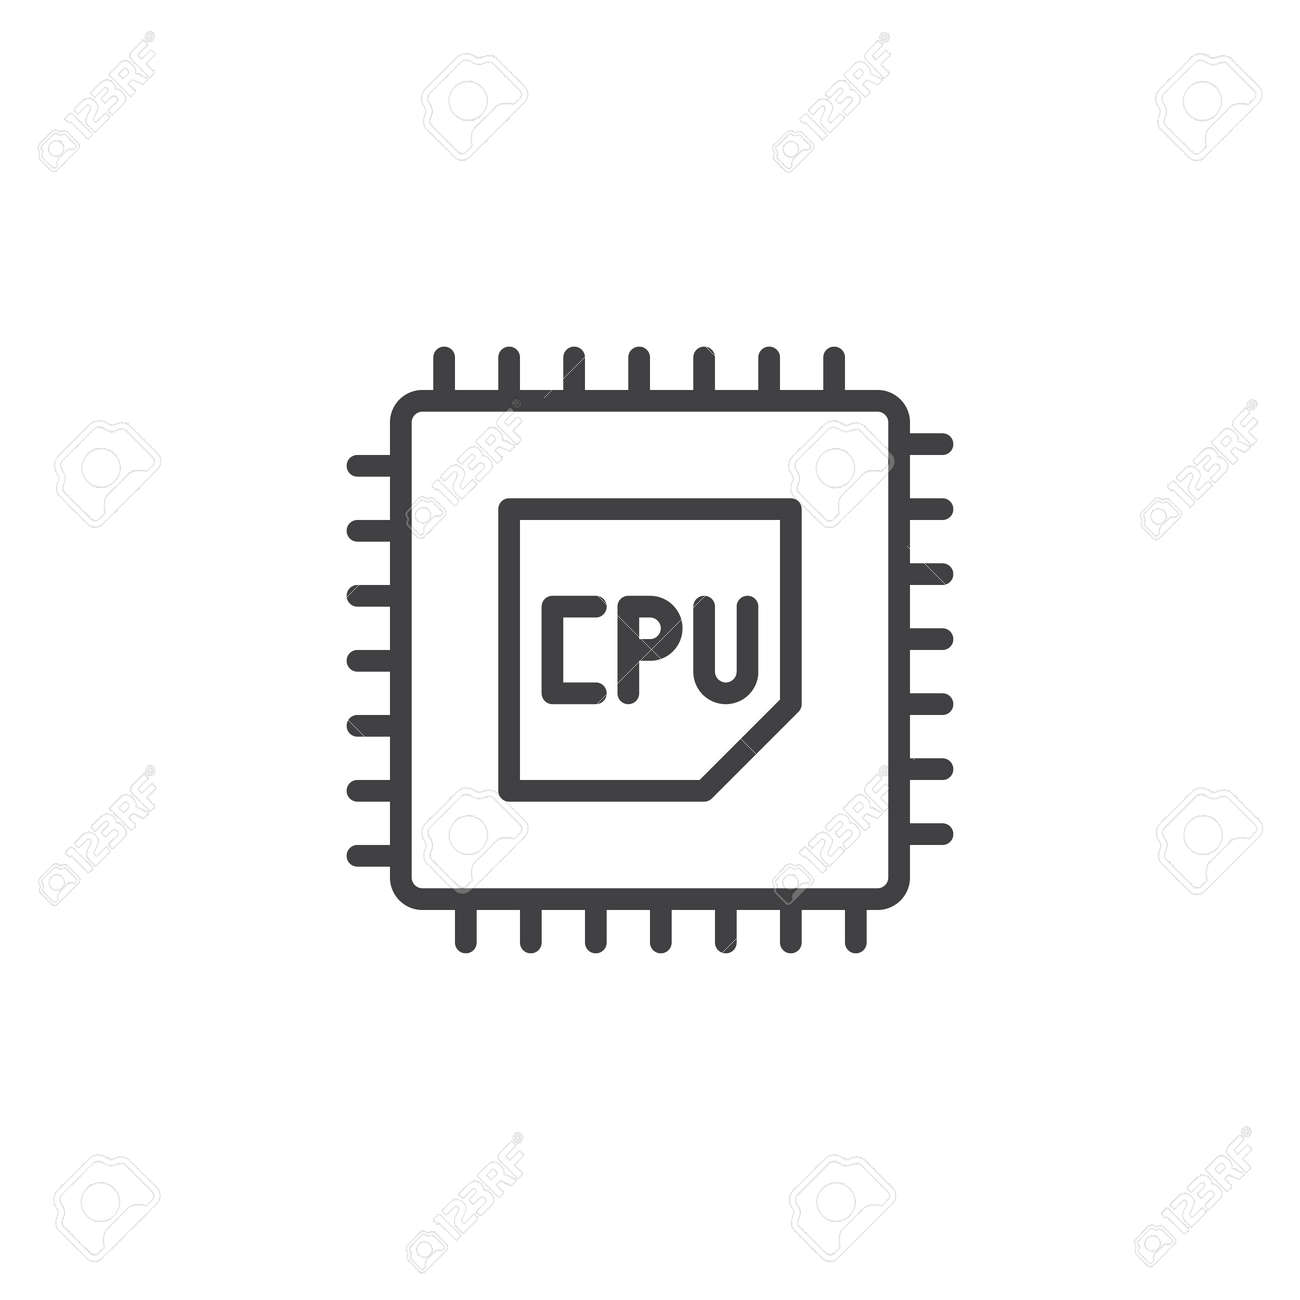 cpu processor line icon outline vector sign linear style pictograph royalty free cliparts vectors and stock illustration image 94384139 cpu processor line icon outline vector sign linear style pictograph